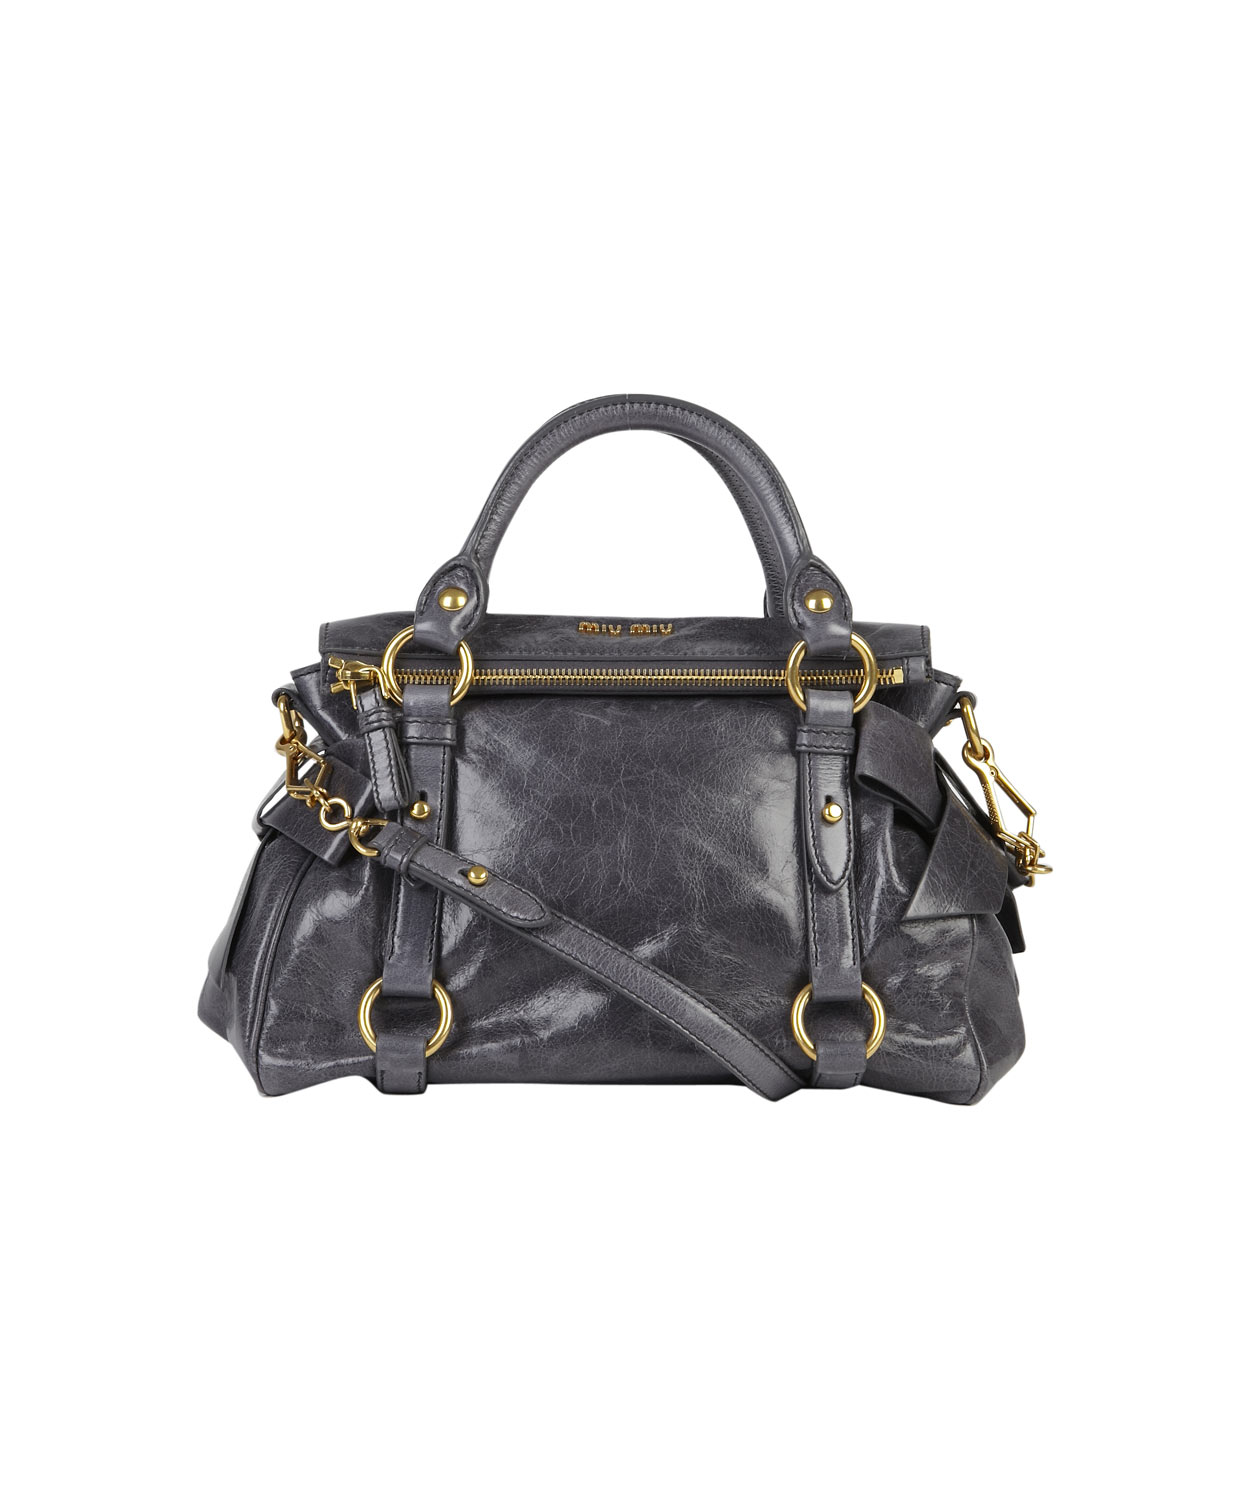 f49ce091d643 Miu Miu Mini Grey Vitello Bow Bag in Gray - Lyst